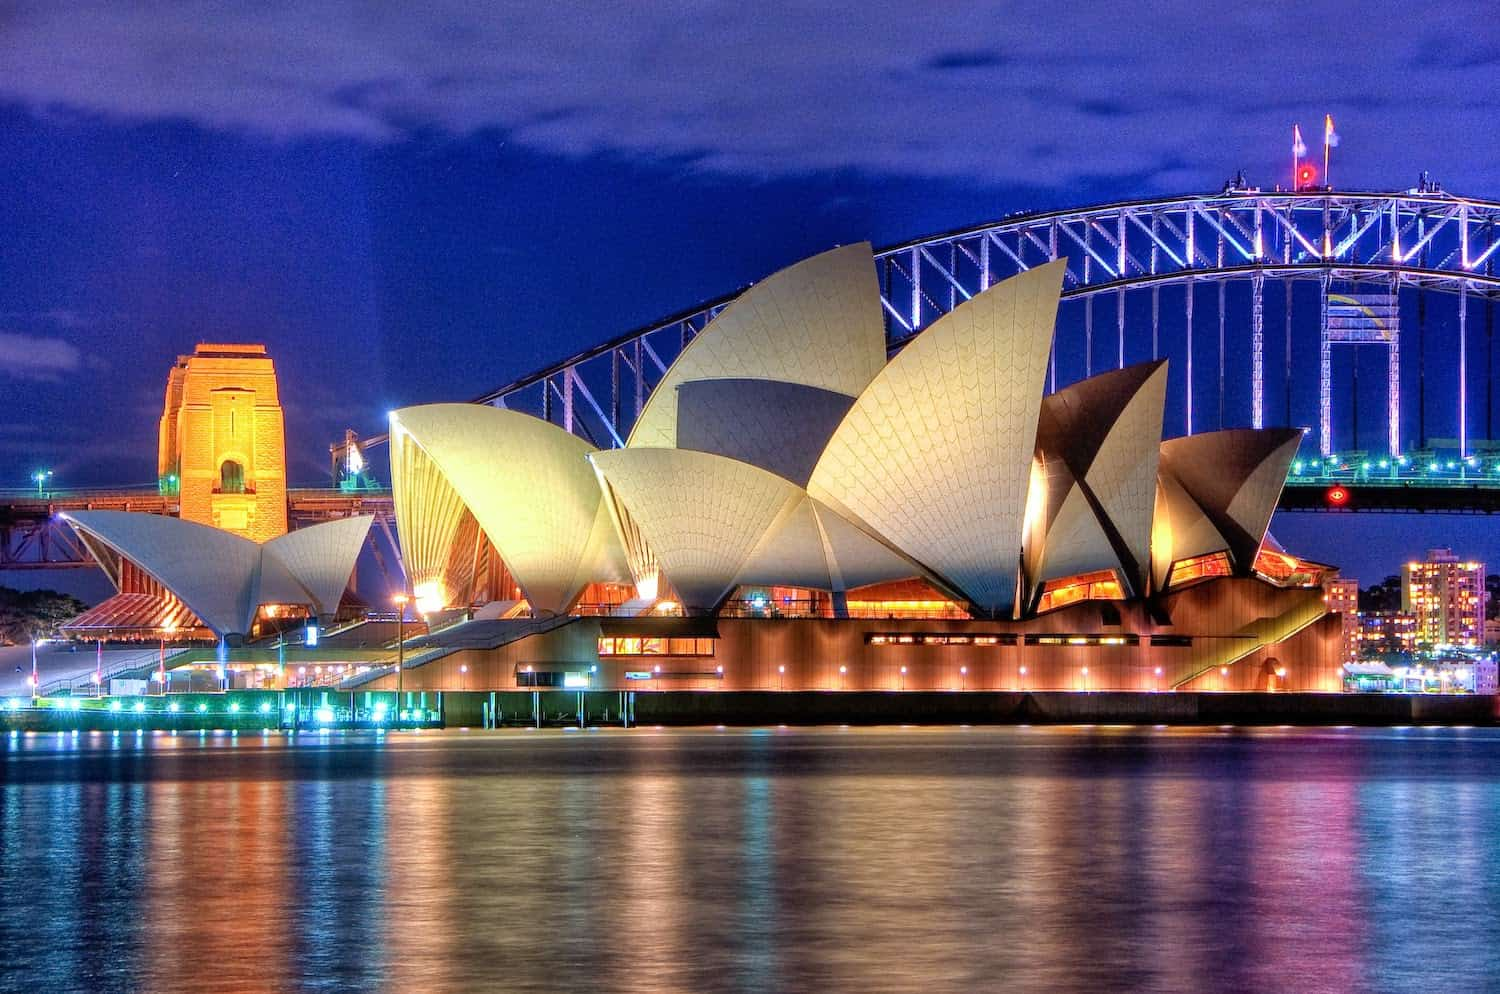 Sydney Opera House, Part of 14 Days Around the World offer